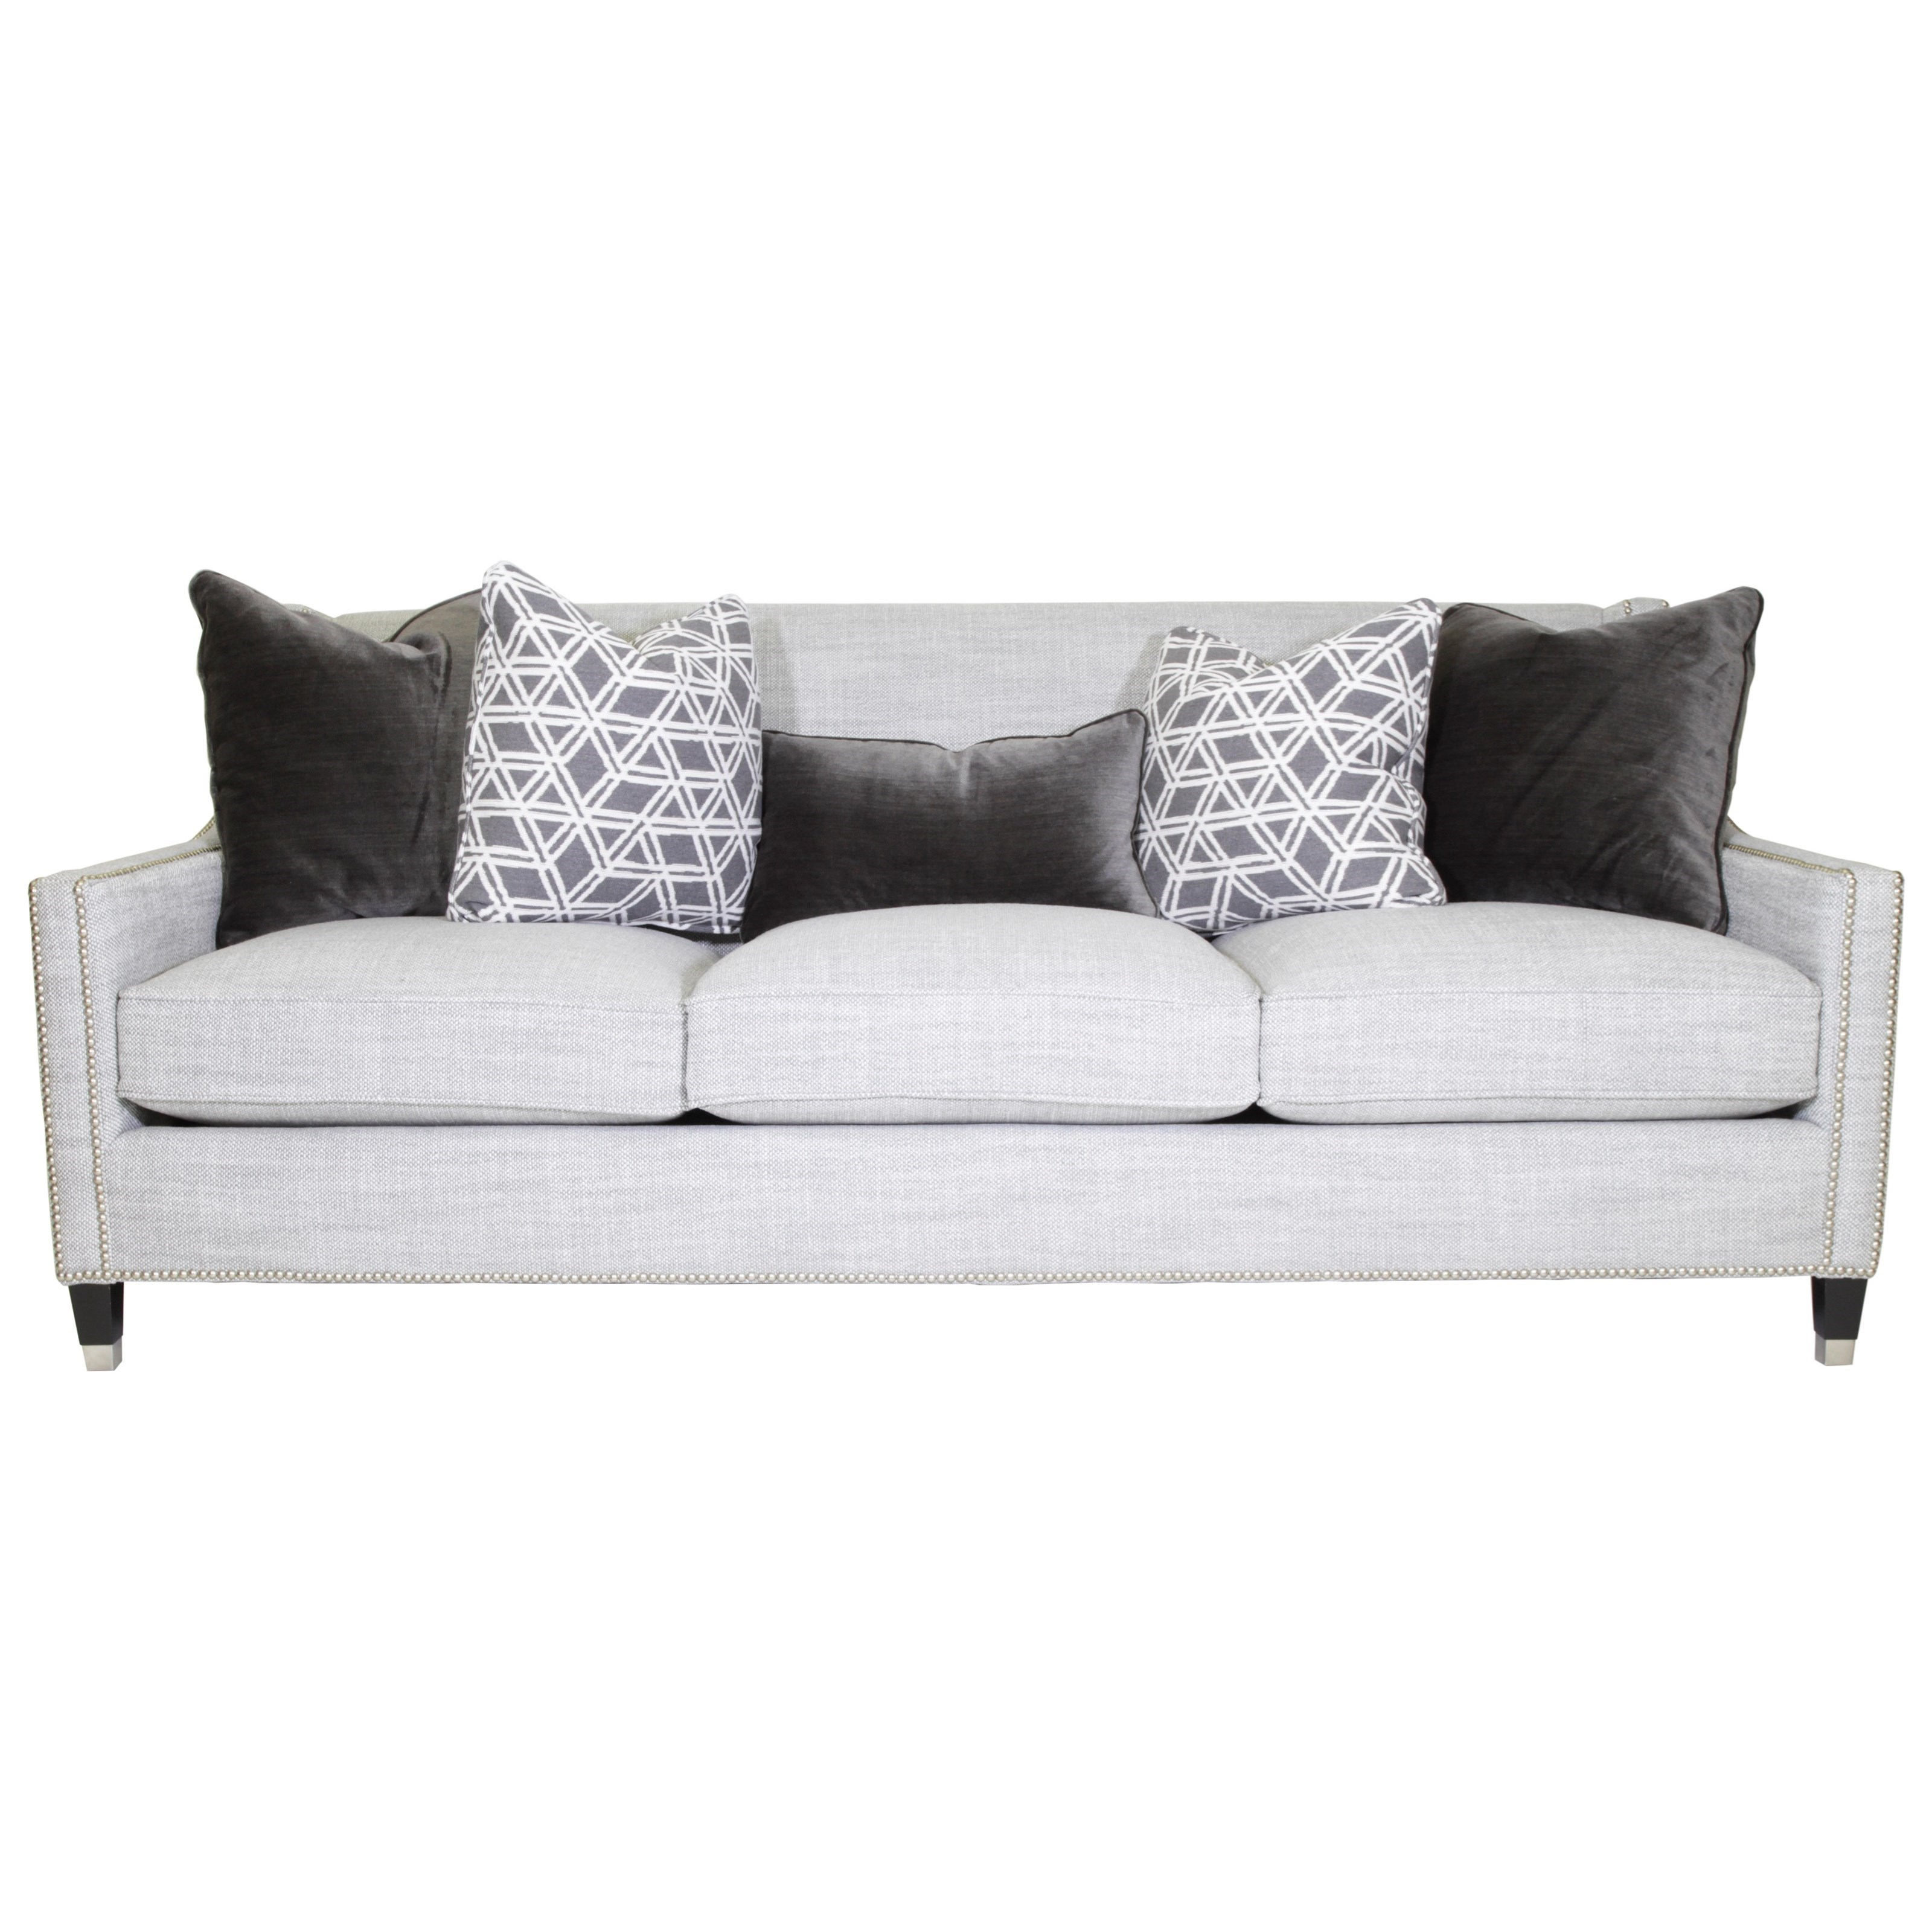 Bernhardt PalisadesTransitional Sofa With Nailhead Trim ...